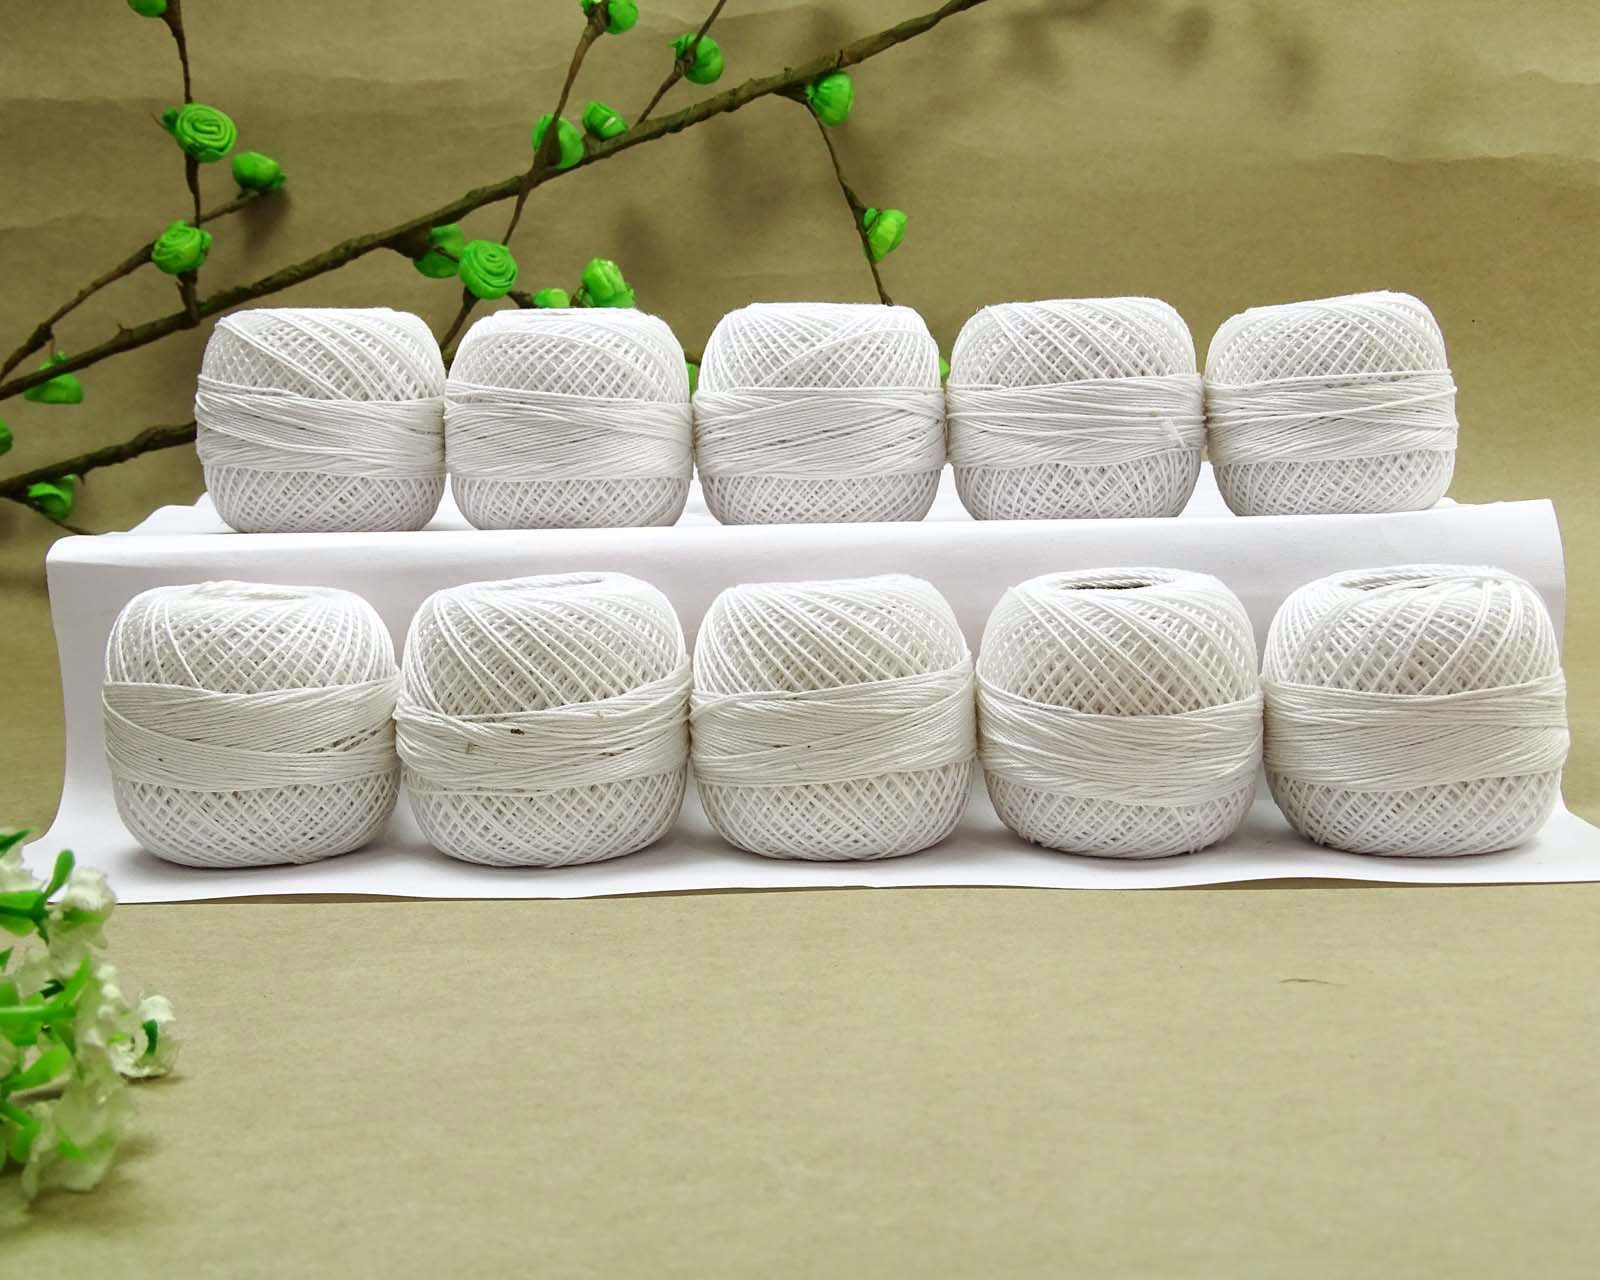 Lovely Anchor Crochet Cotton Knitting Tatting Ball Embroidery Crochet Cotton Thread Of New 50 Pics Crochet Cotton Thread